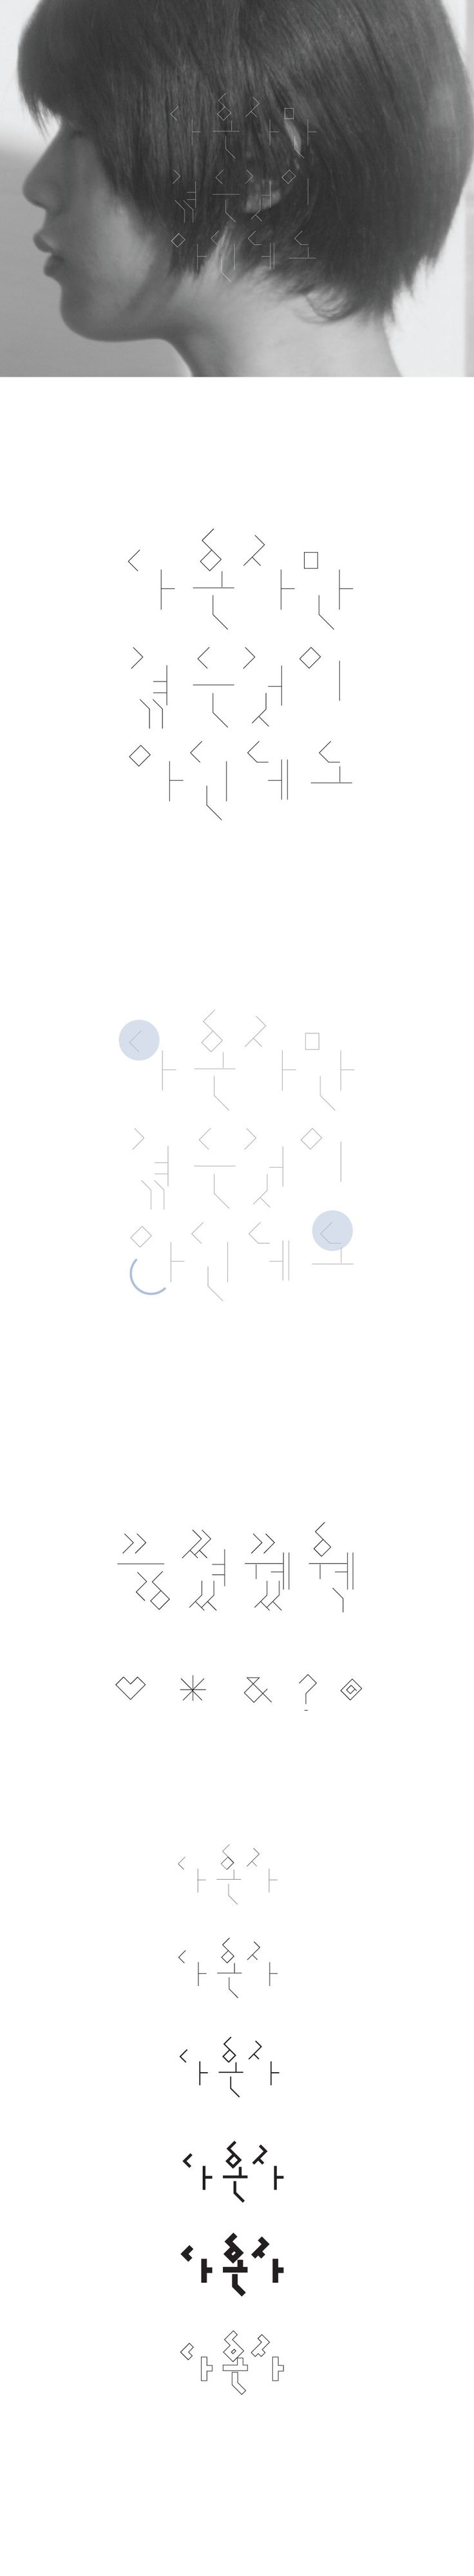 김주리│ Typography Design 2015│ Major in Digital Media Design│#hicoda │hicoda.hongik.ac.kr